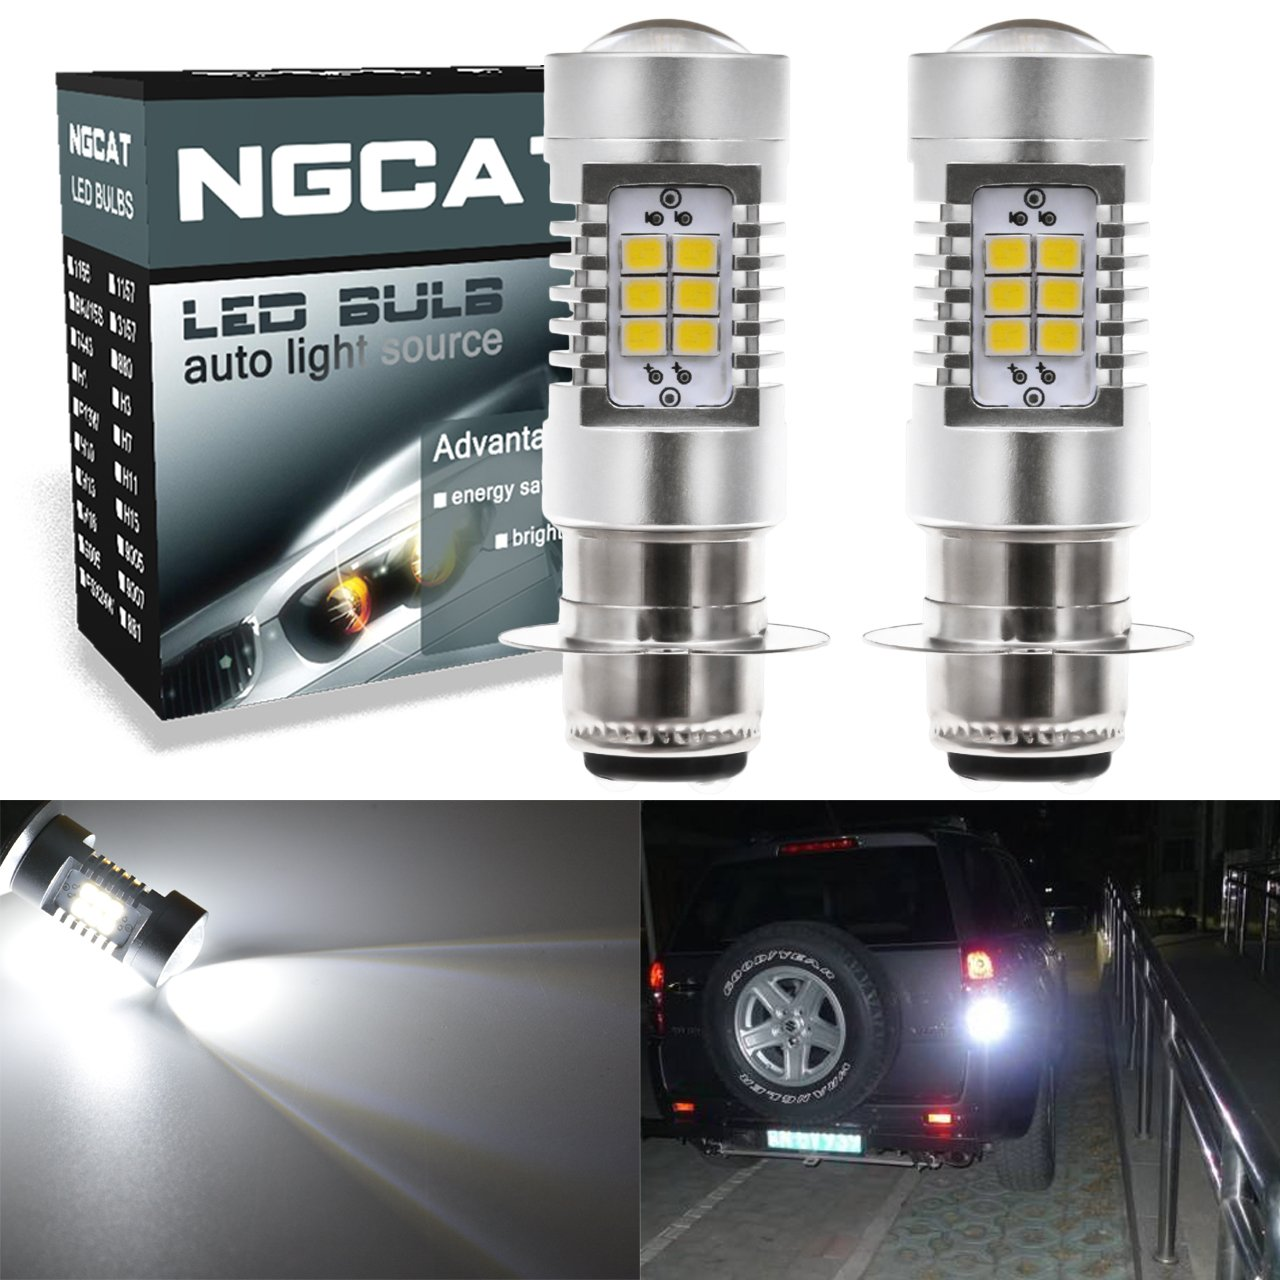 NGCAT Auto LED Bulb 2PCS P15D H6M Motorcycle Headlight DRL Special for Motorcycle LED Bulb 2835 21 SMD Chipsets LED Bulbs with Lens Projector Daytime Running Driving Light, Xenon White 10-16V 10.5W